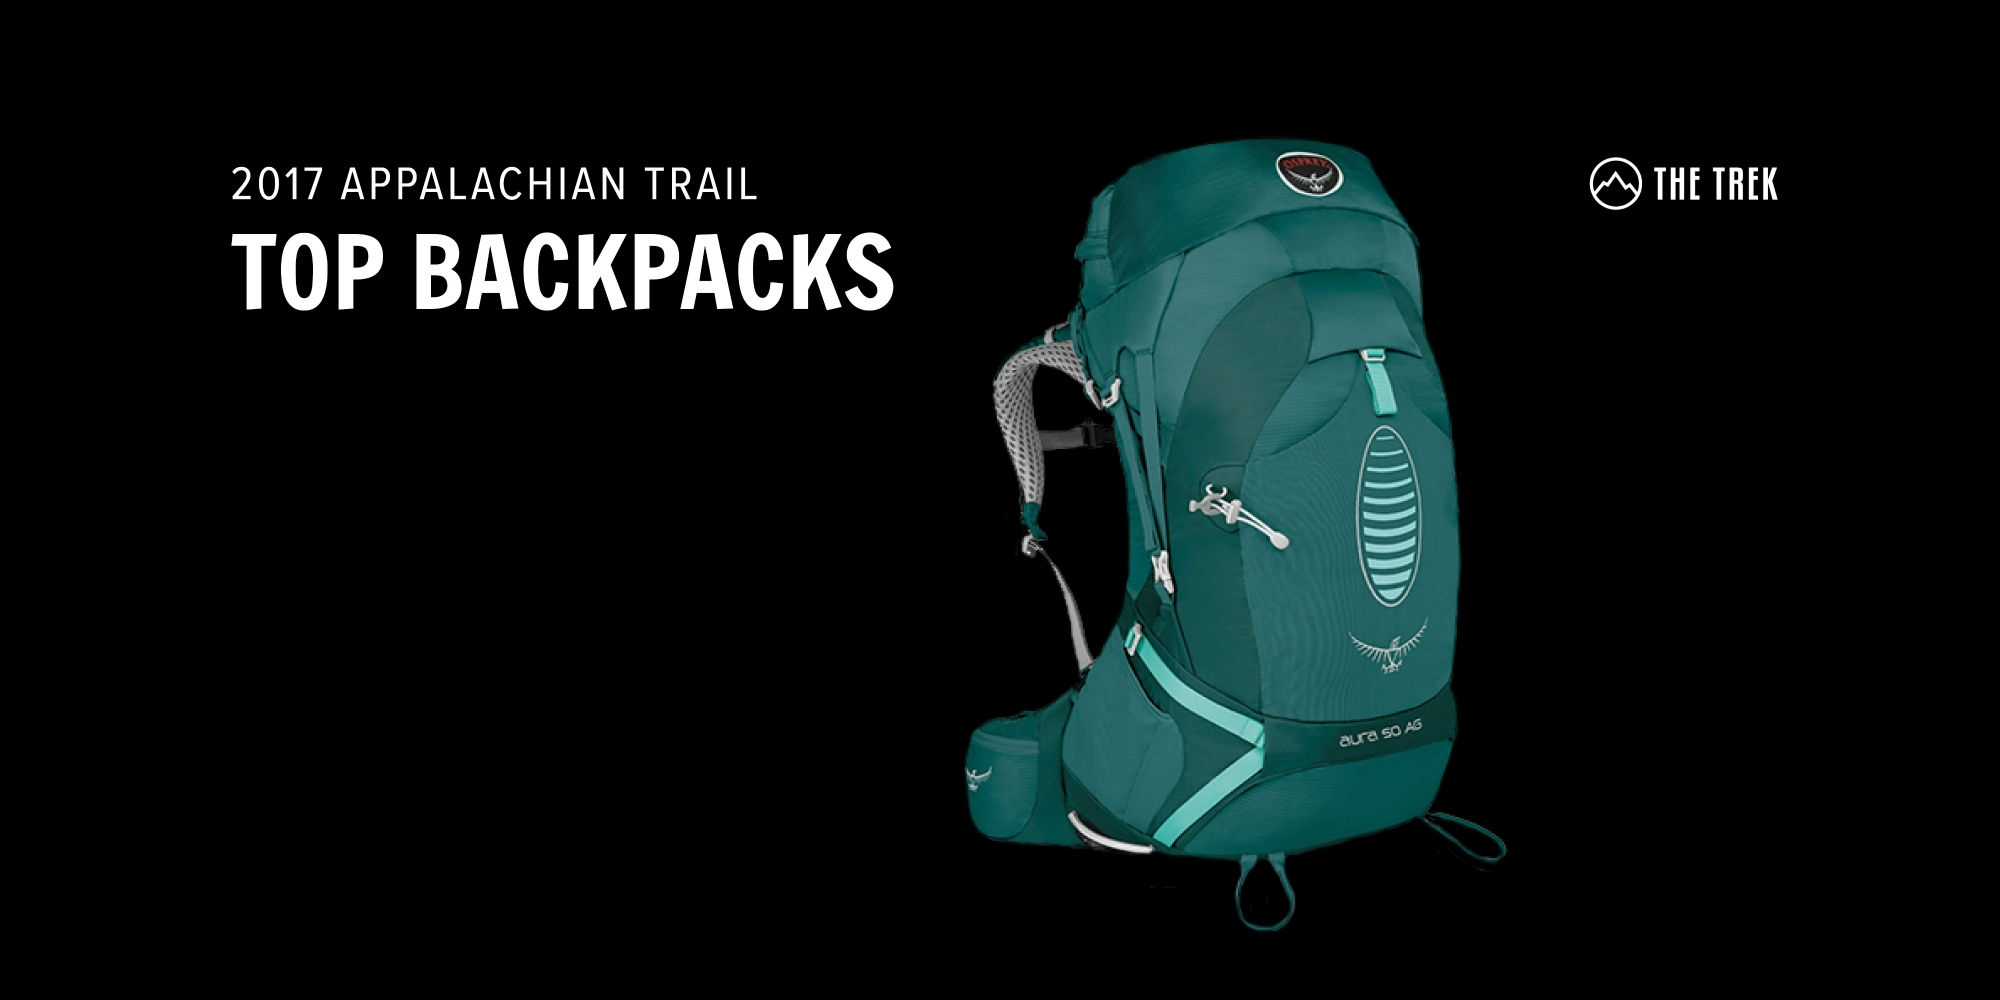 Top Backpacks on the AT: Results from the 2017 Hiker Survey